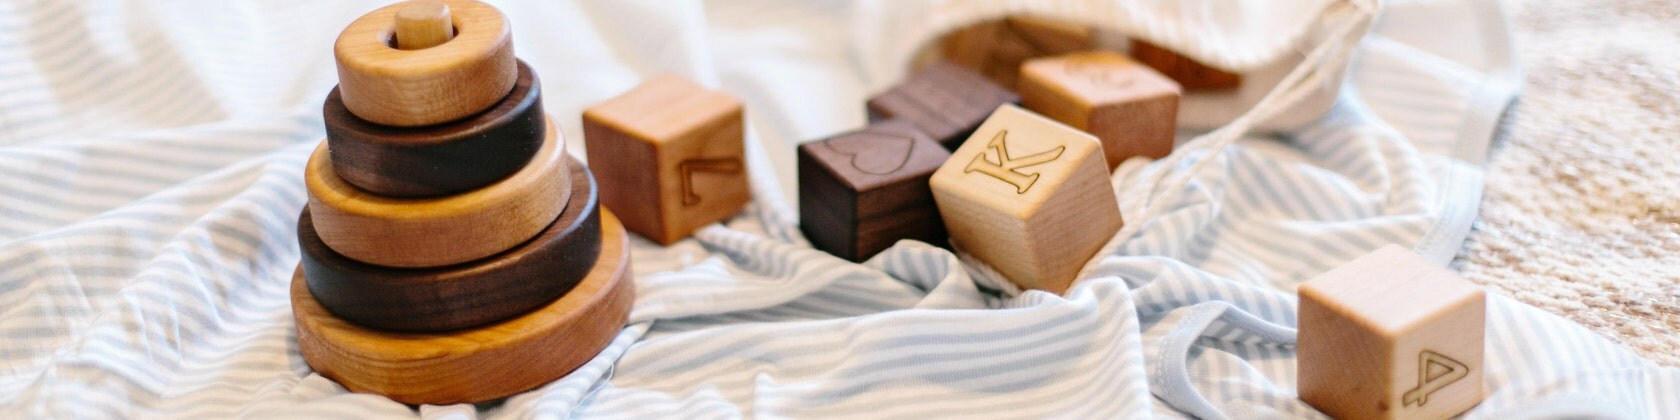 Handmade Wooden Heirloom Toys By Bannortoys On Etsy